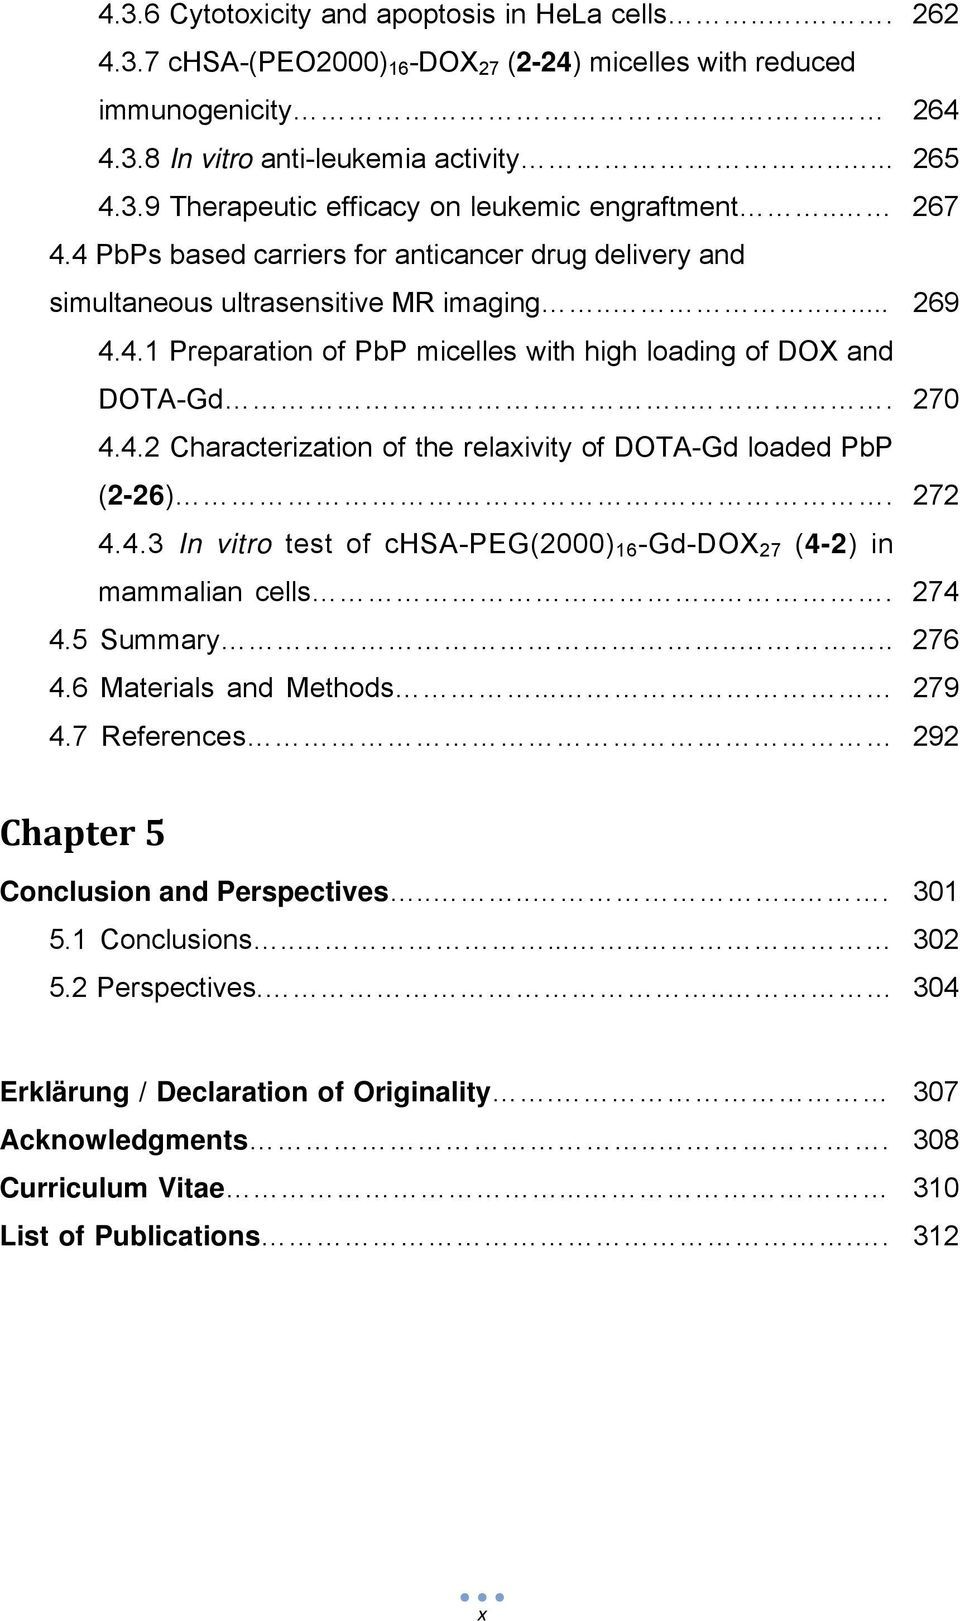 . 272 4.4.3 In vitro test of chsa-peg(2000) 16 -Gd-DOX 27 (4-2) in mammalian cells... 274 4.5 Summary.... 276 4.6 Materials and Methods... 279 4.7 References 292 Chapter 5 Conclusion and Perspectives.